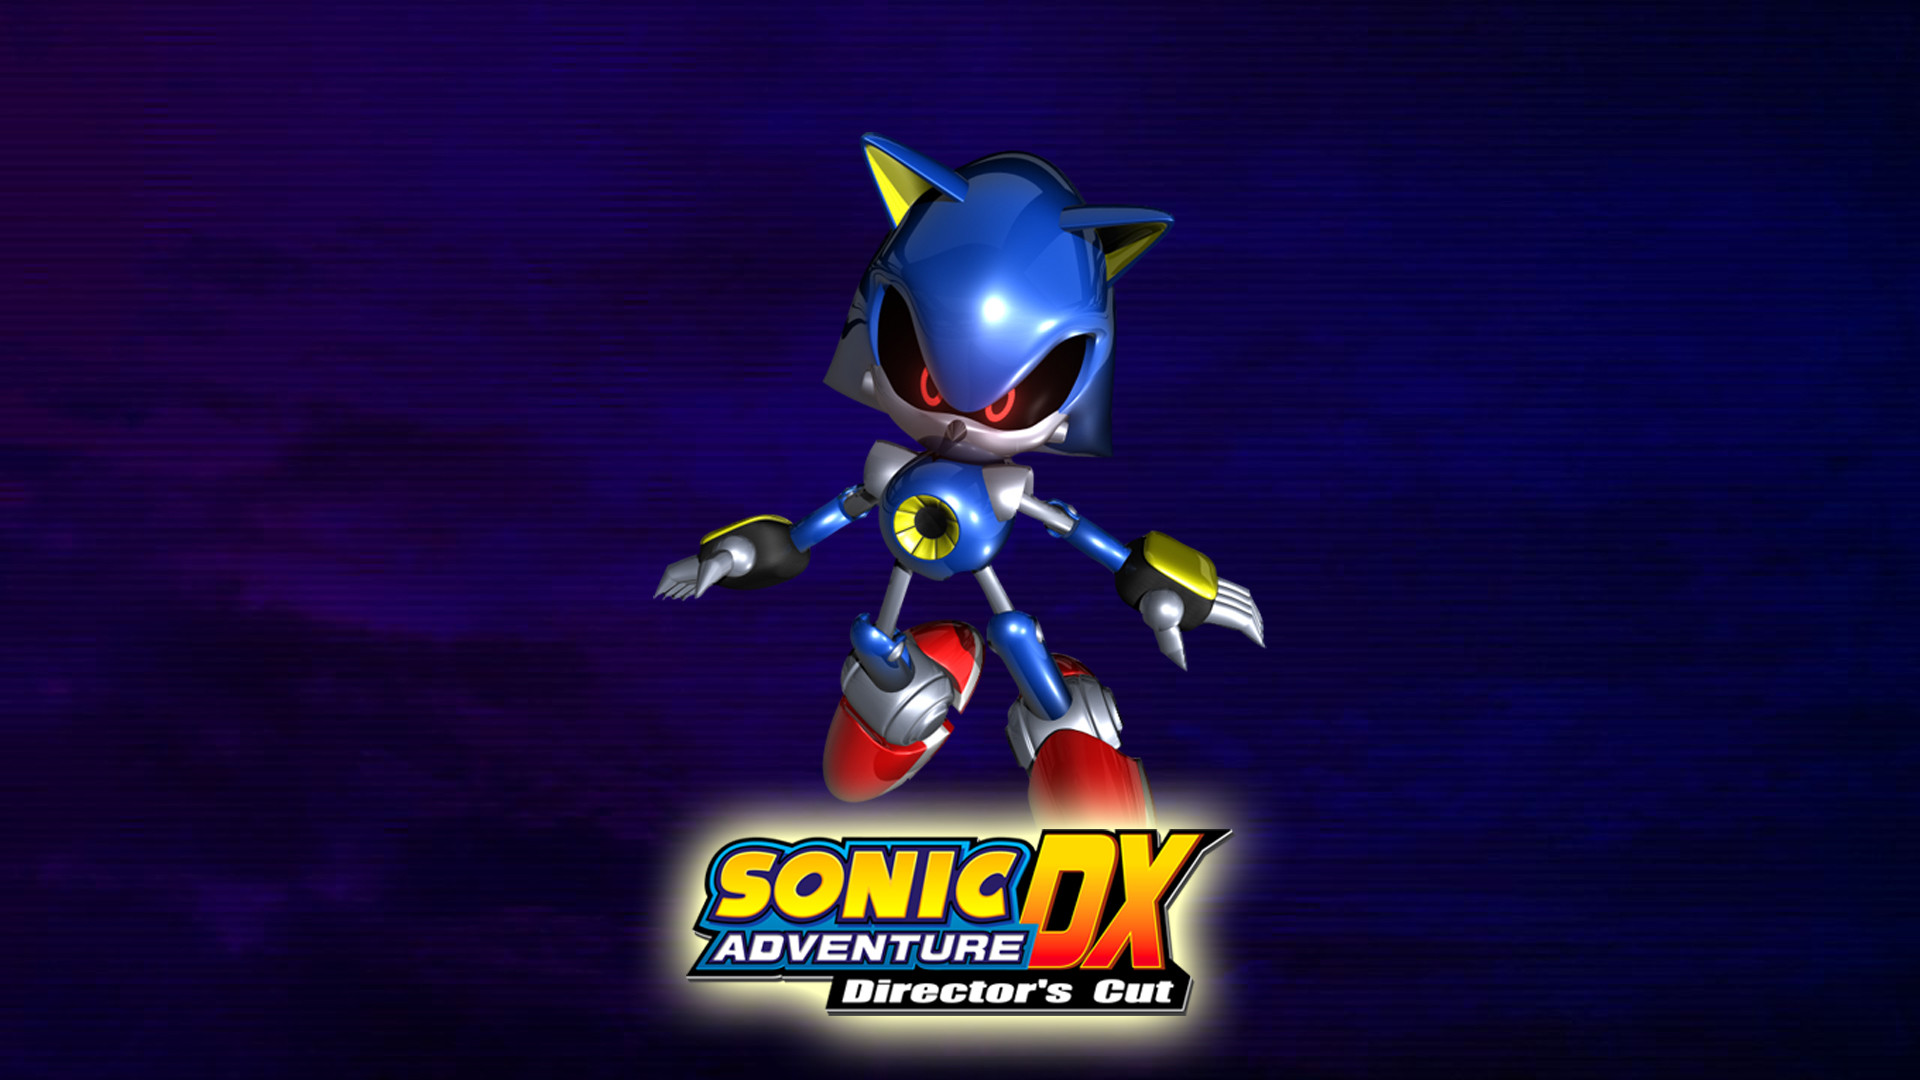 1920x1080 ... Sonic Adventure DX - Metal Sonic Wallpaper by Hynotama